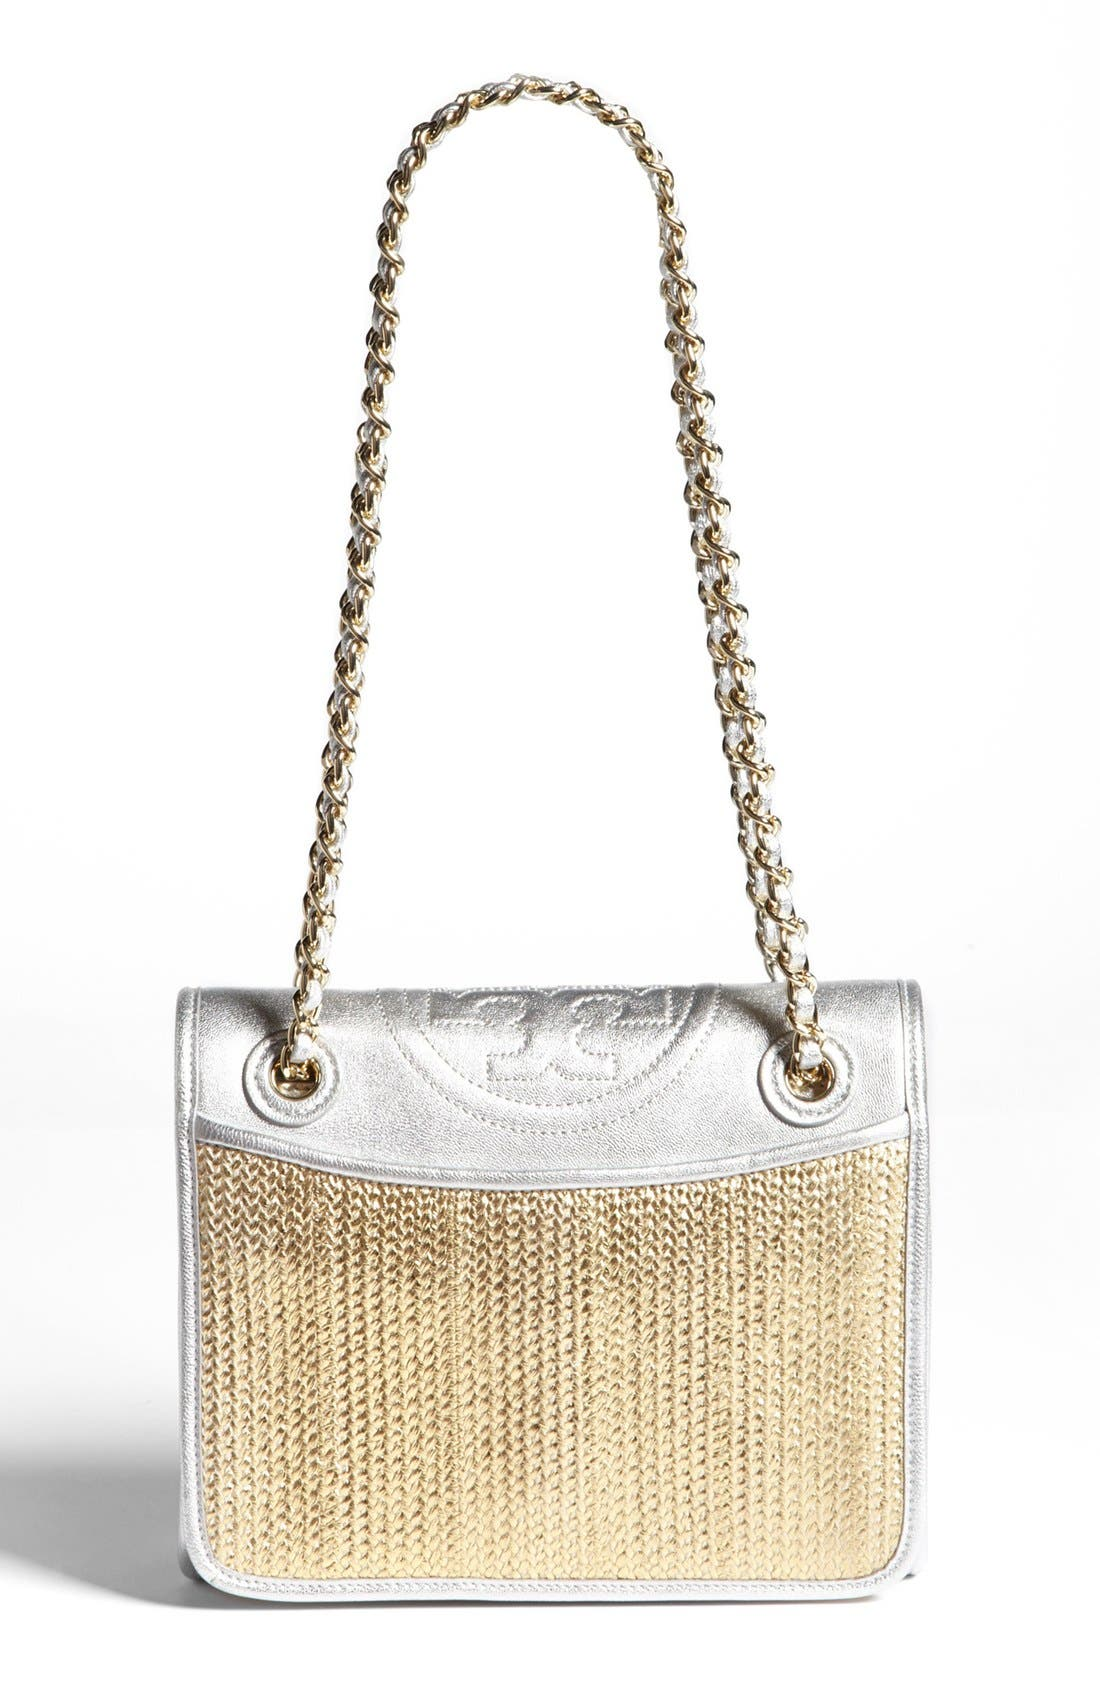 Alternate Image 1 Selected - Tory Burch 'Fleming - Medium' Shoulder Bag